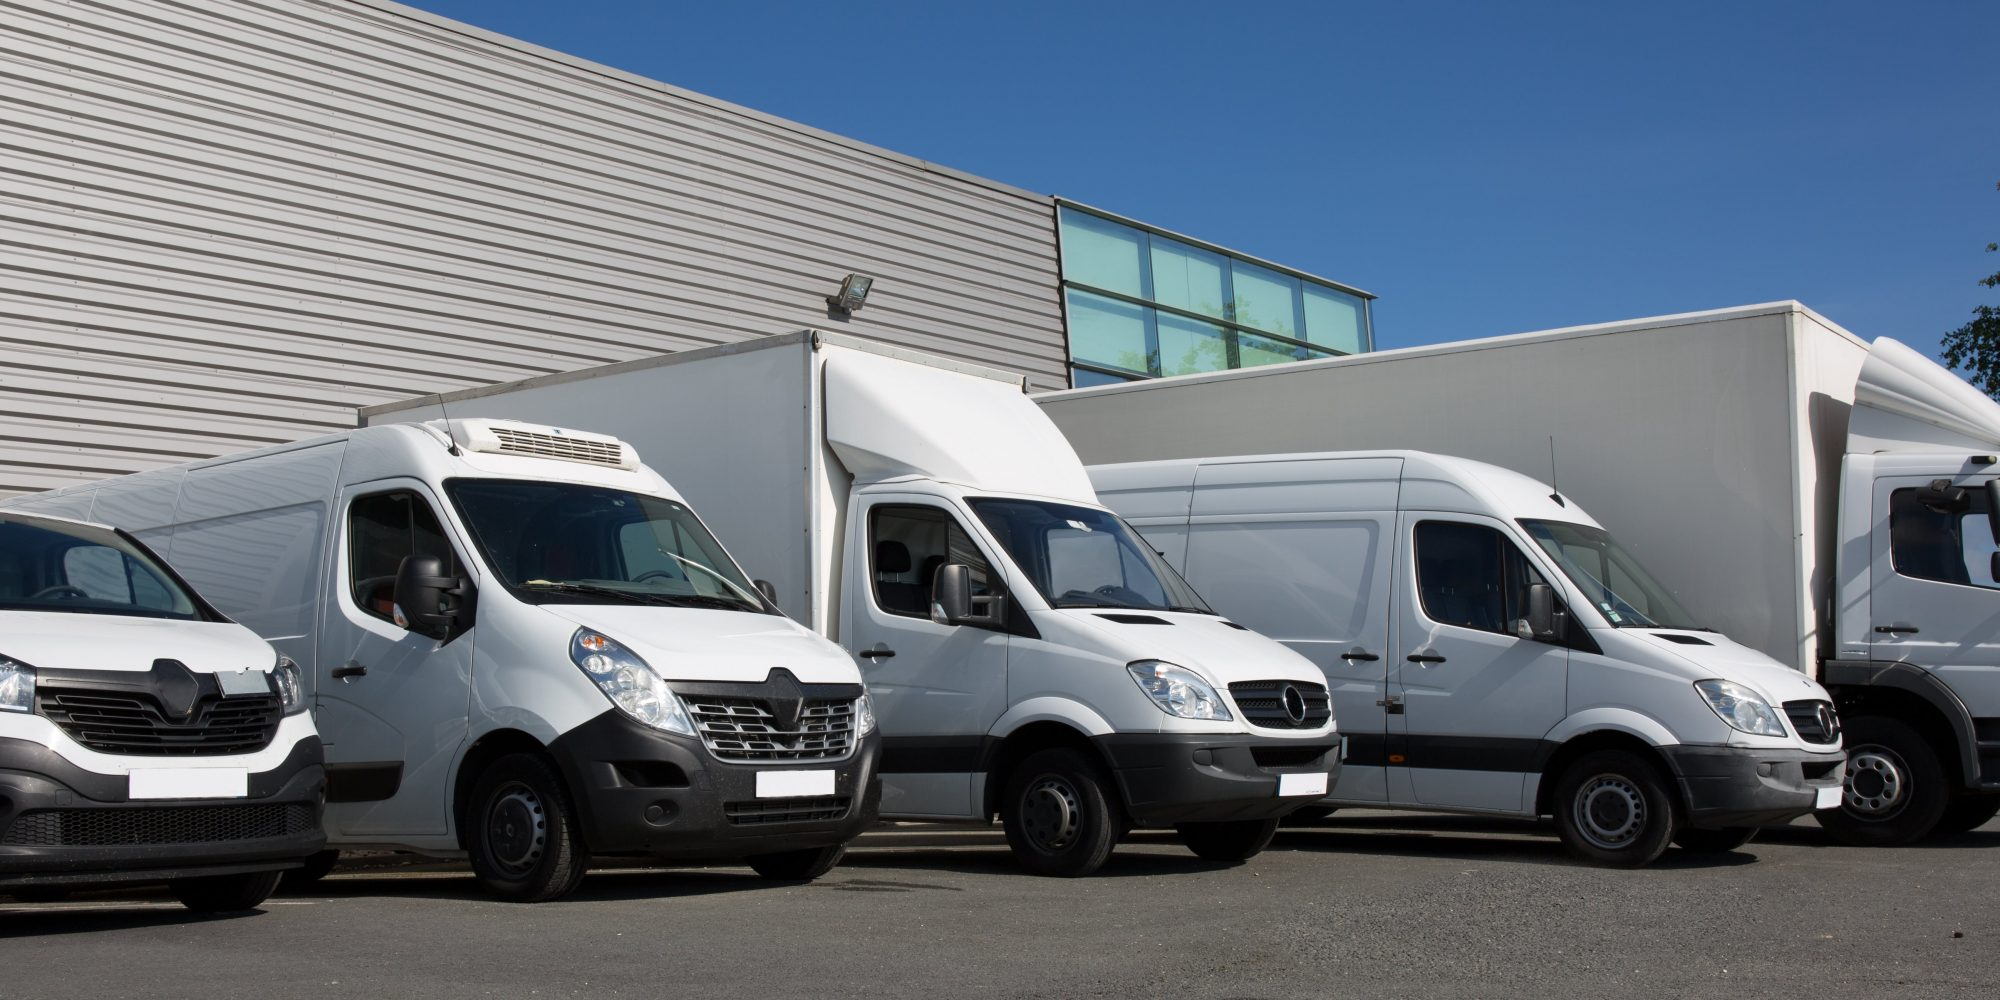 Park society specialized delivery with small trucks and van